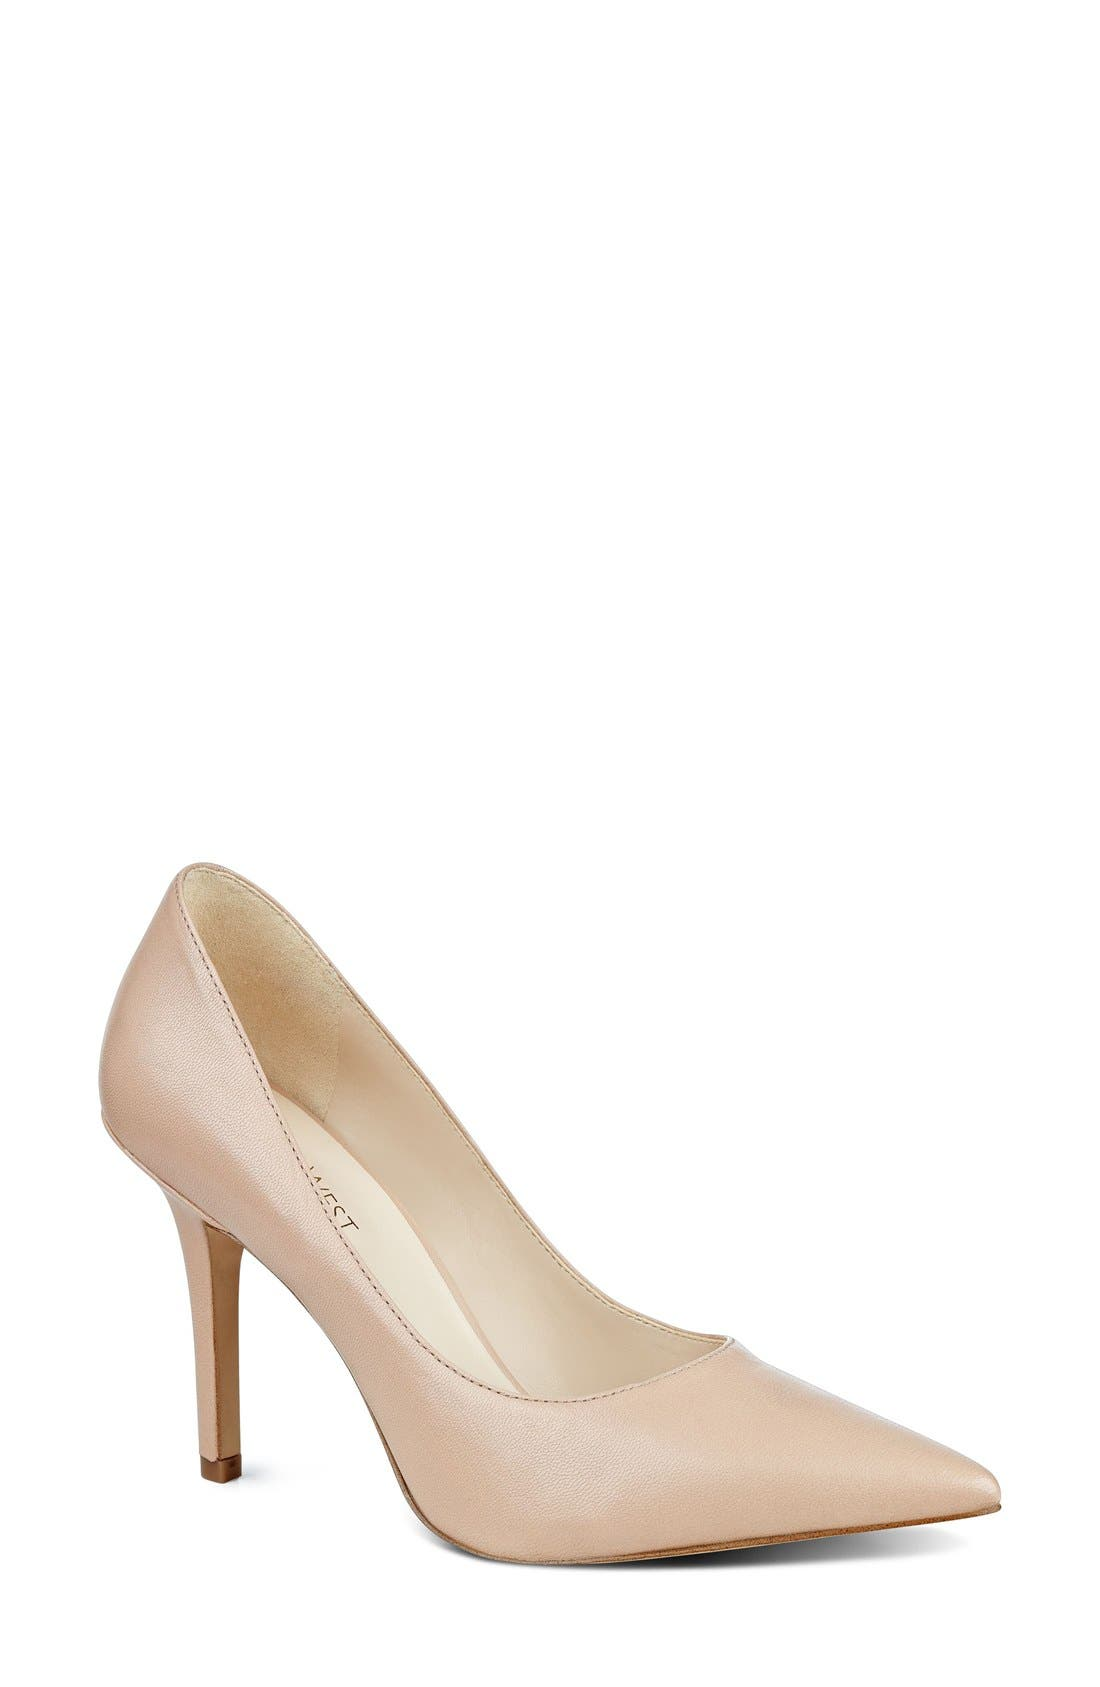 Alternate Image 1 Selected - Nine West 'Jackpot' Pointy Toe Pump (Women)